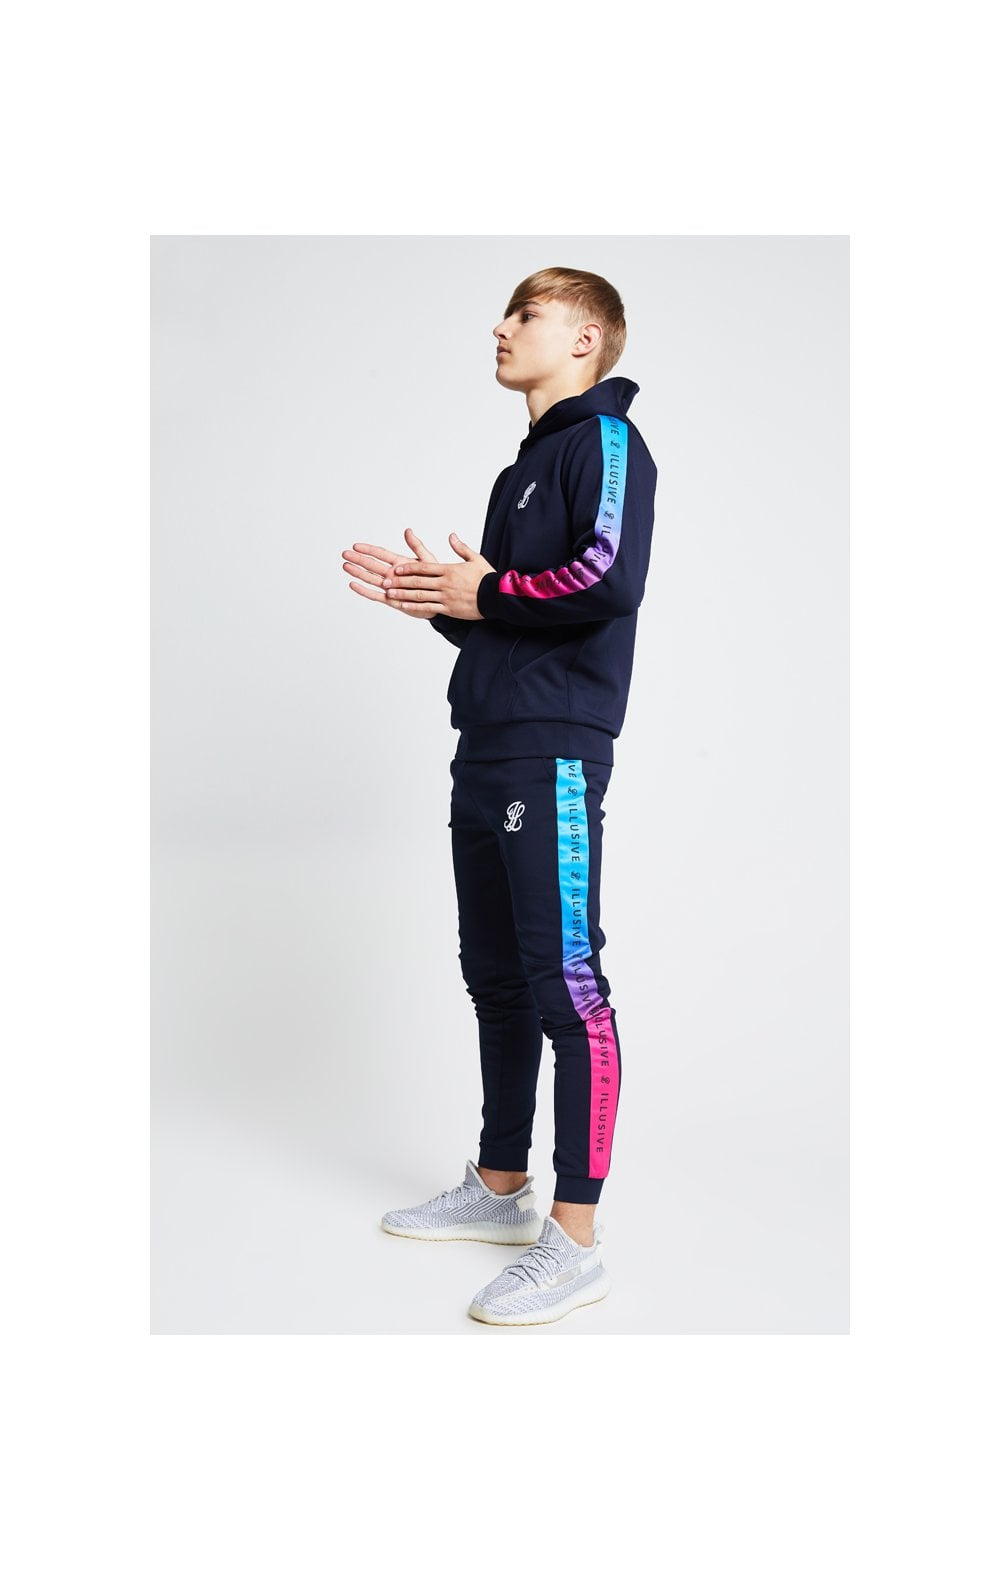 Illusive London Fade Panel Overhead Hoodie - Navy Blue & Pink (1)